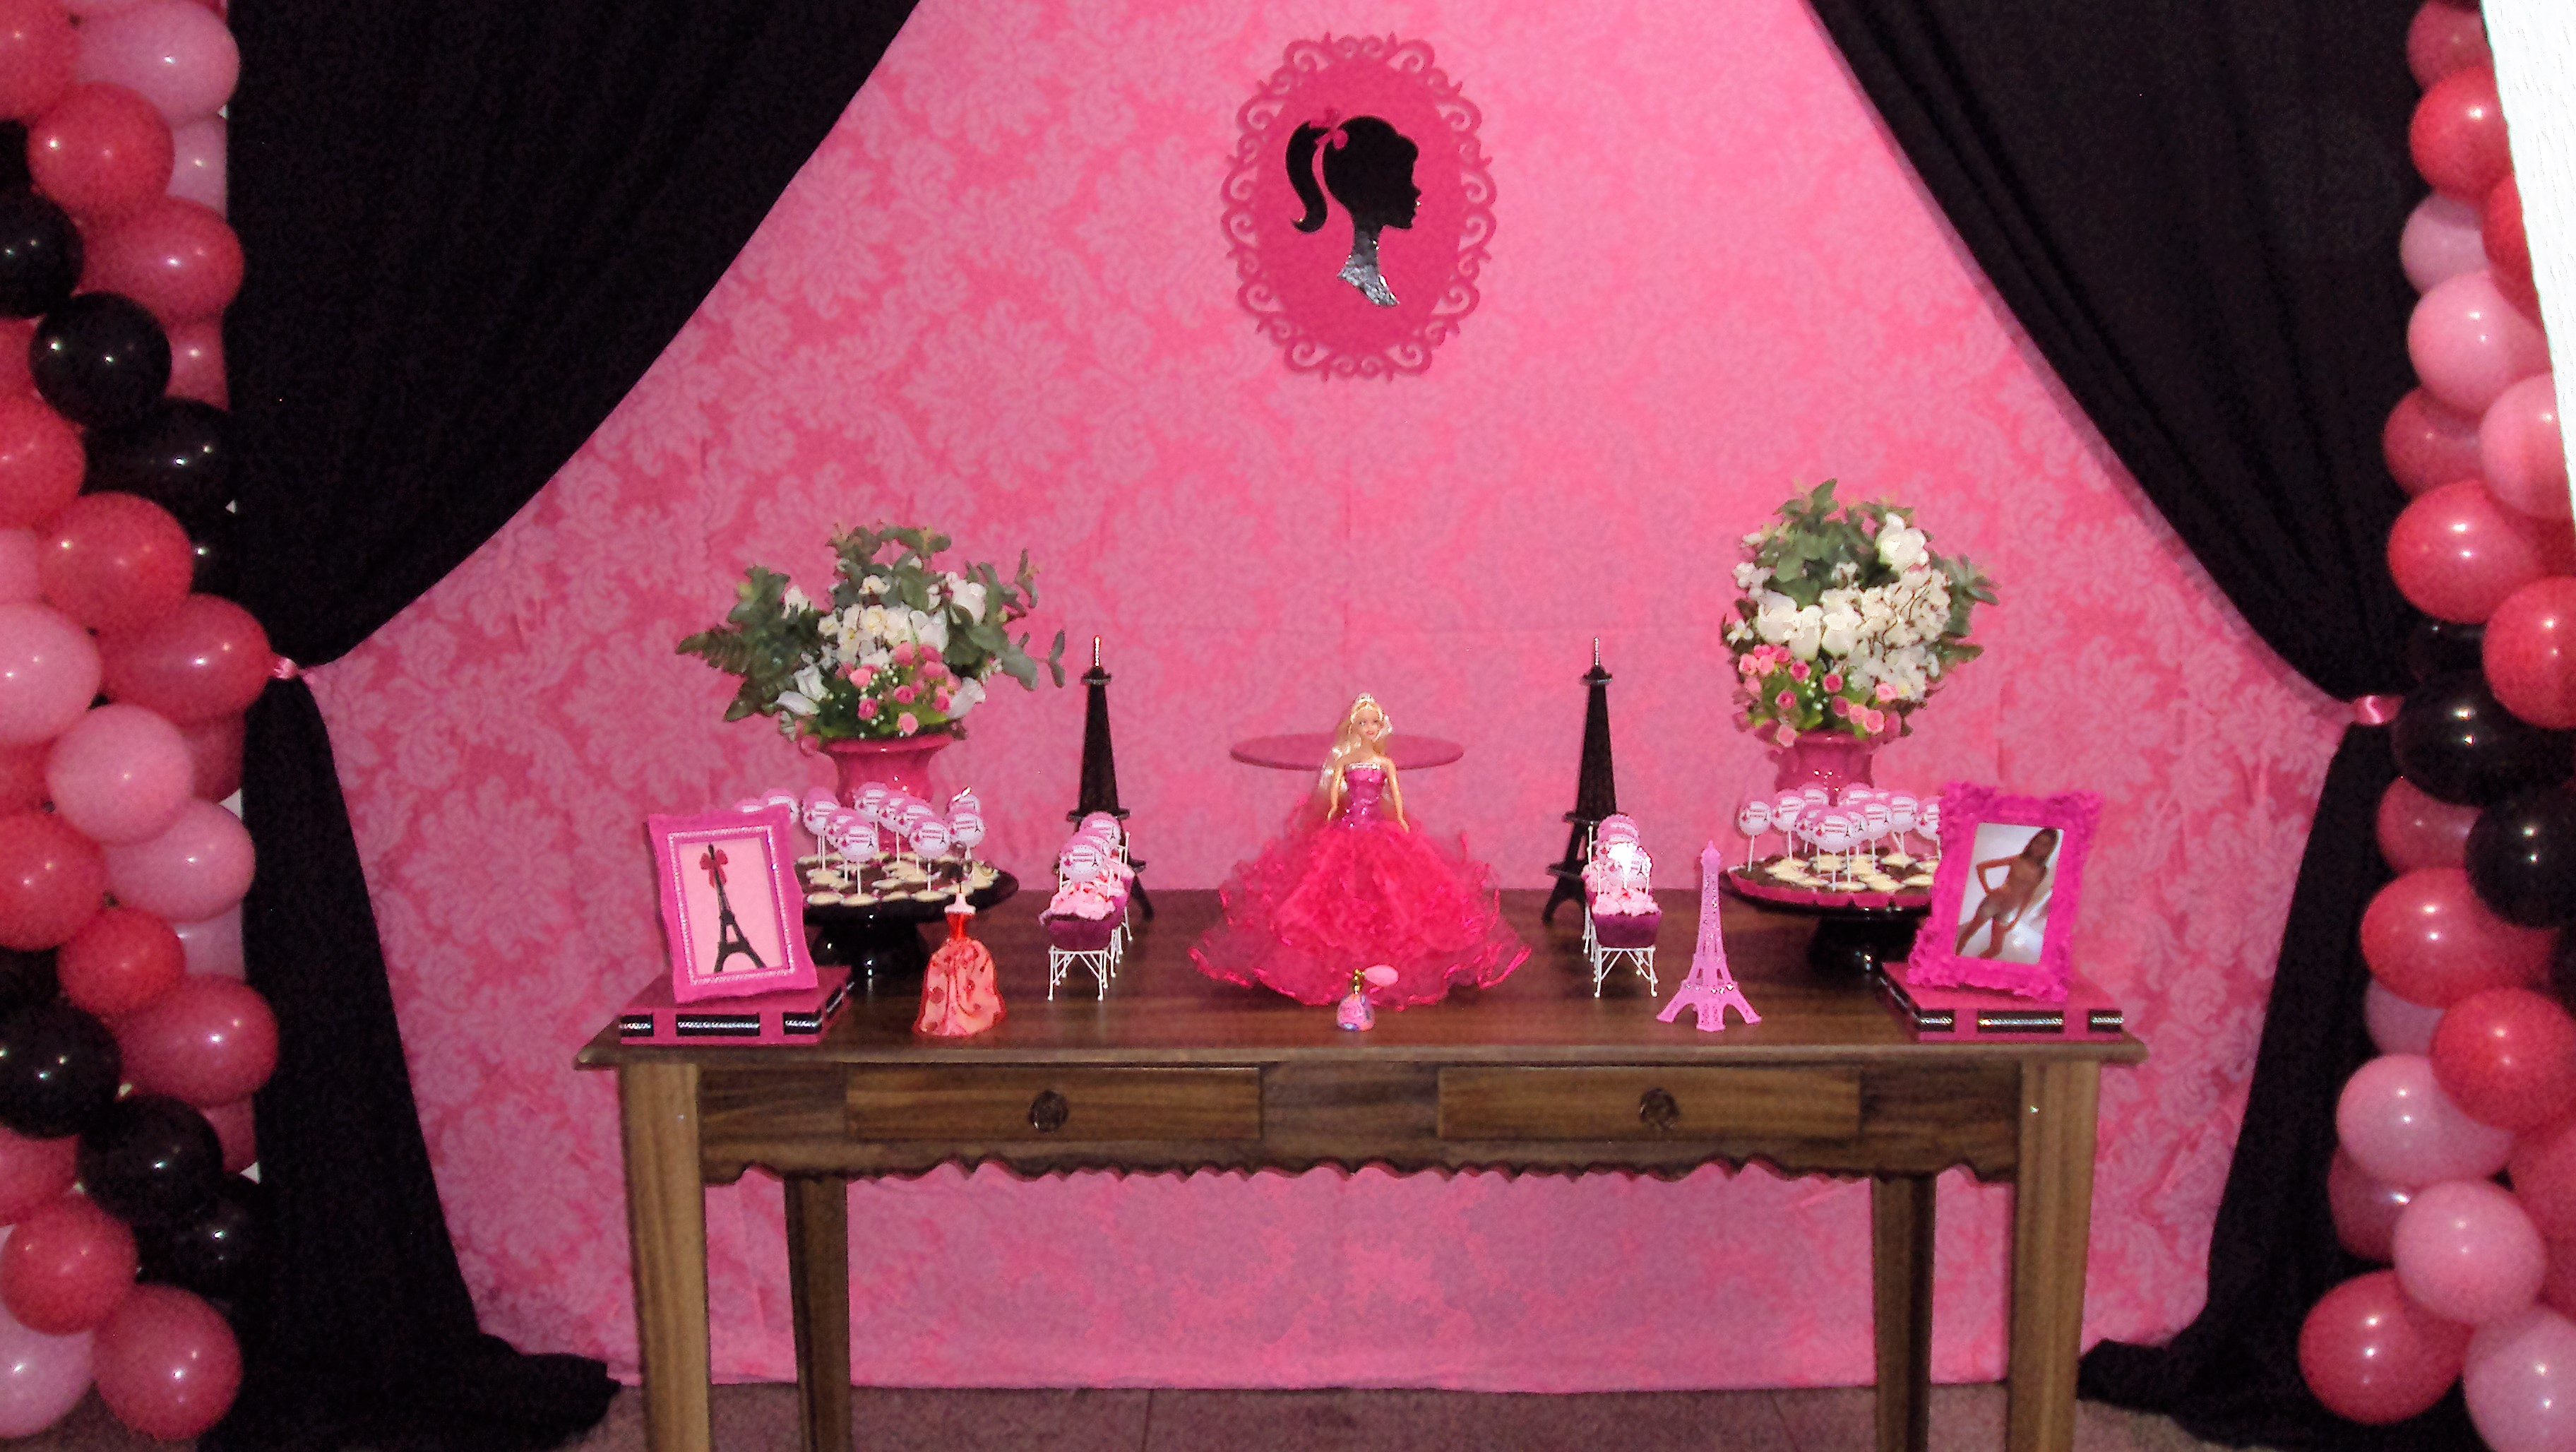 decoracao-barbie-paris-festa-infantil-barbie.jpg